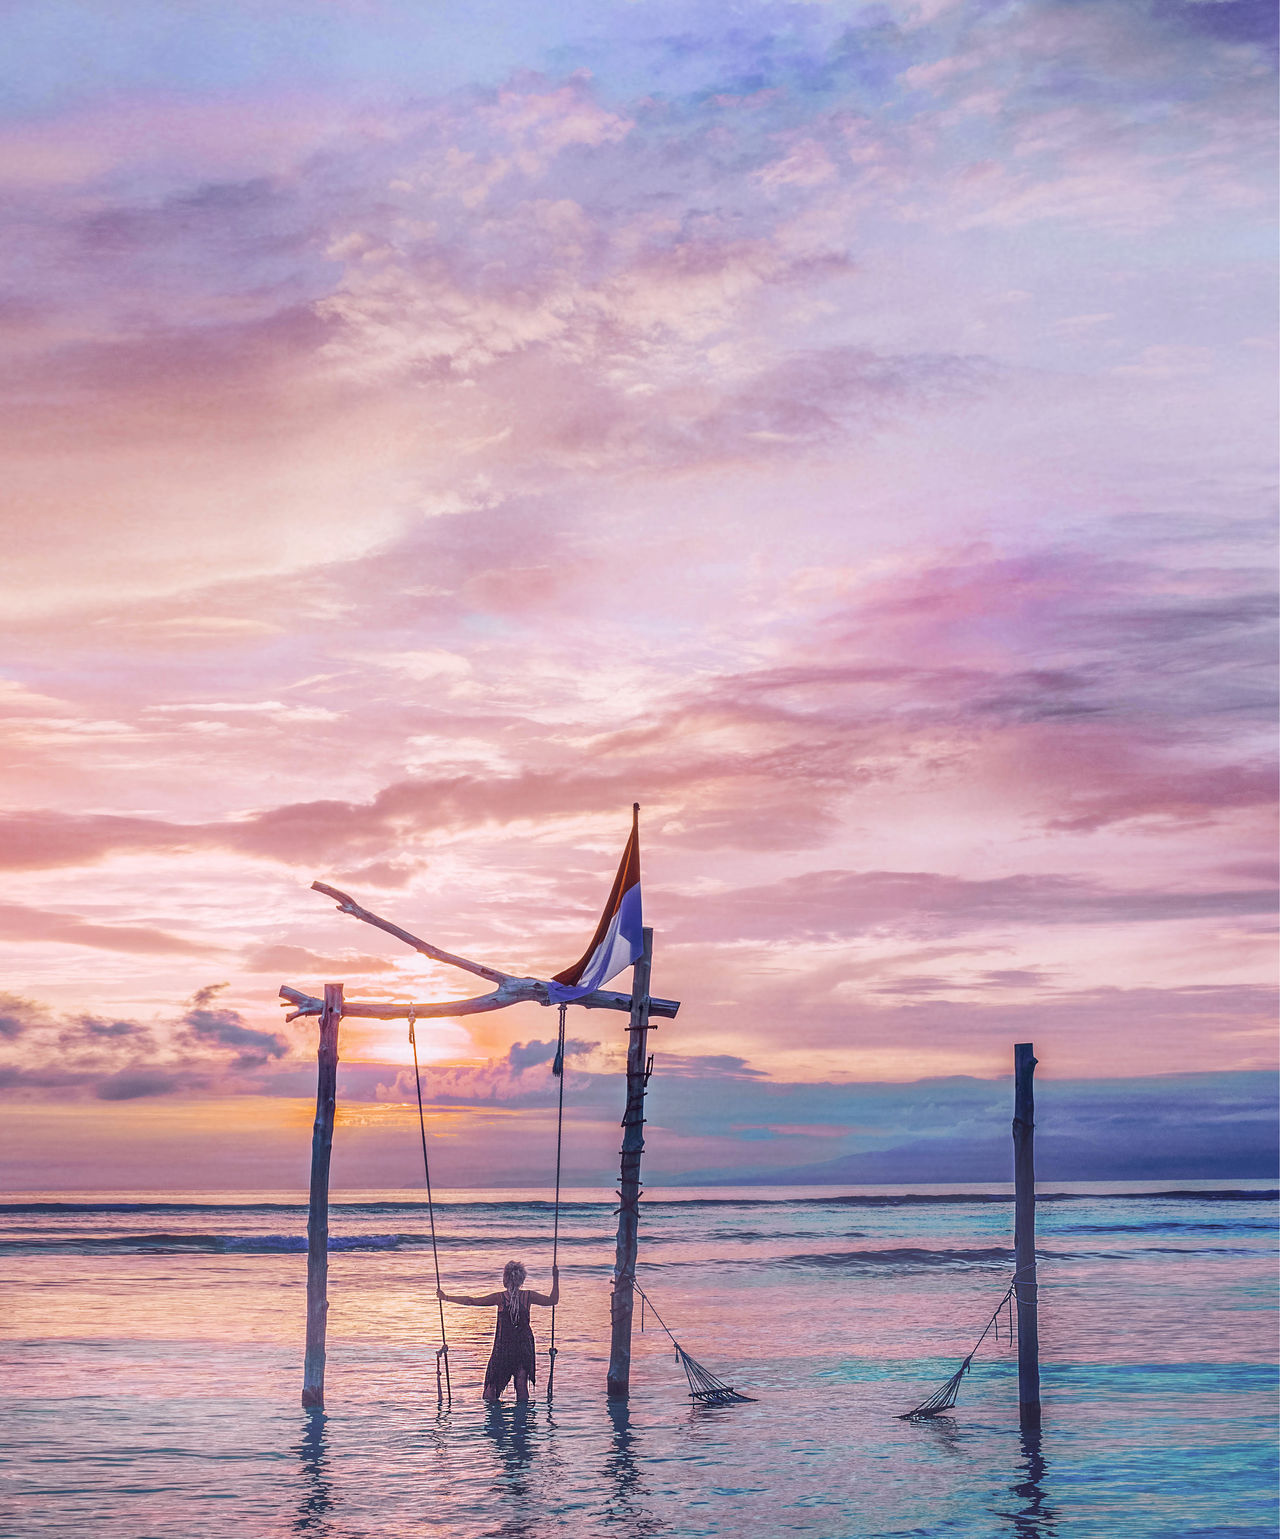 Good bye to sun, Gili Islands, Indonesia Backpacker Backpacking Beauty In Nature Day Escape Getaway  Gili Islands INDONESIA Nature Nature Photography Outdoors Pastel People Photography Pink Relax Scenics Sea Silhouette Sky Sunset Swing Tourism Travel Water